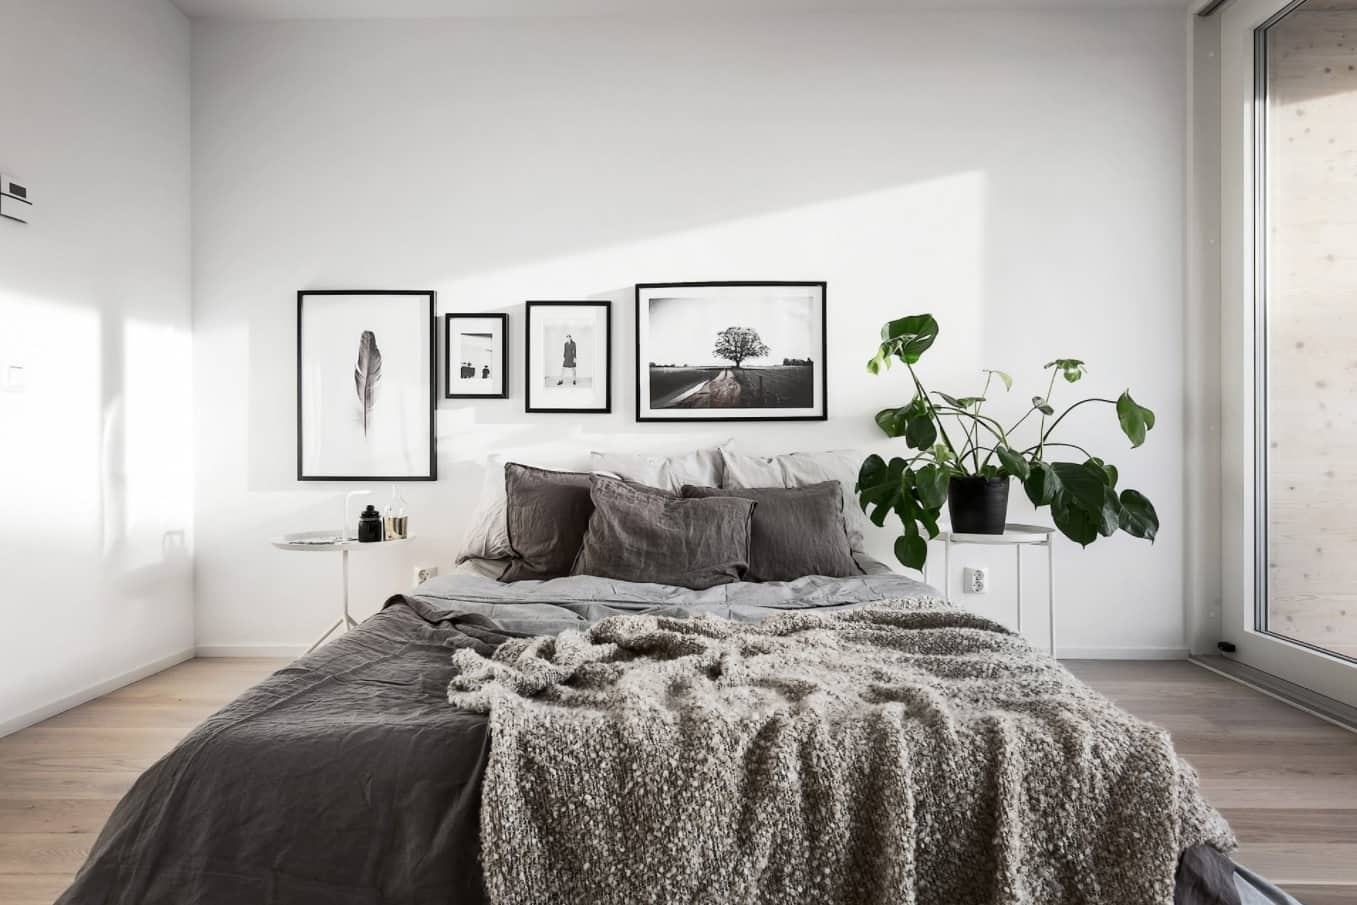 4 Must-Have Bed Coverings You Cannot Miss. Minimalistic Scandinavian design of the bedroom with gray bed linen